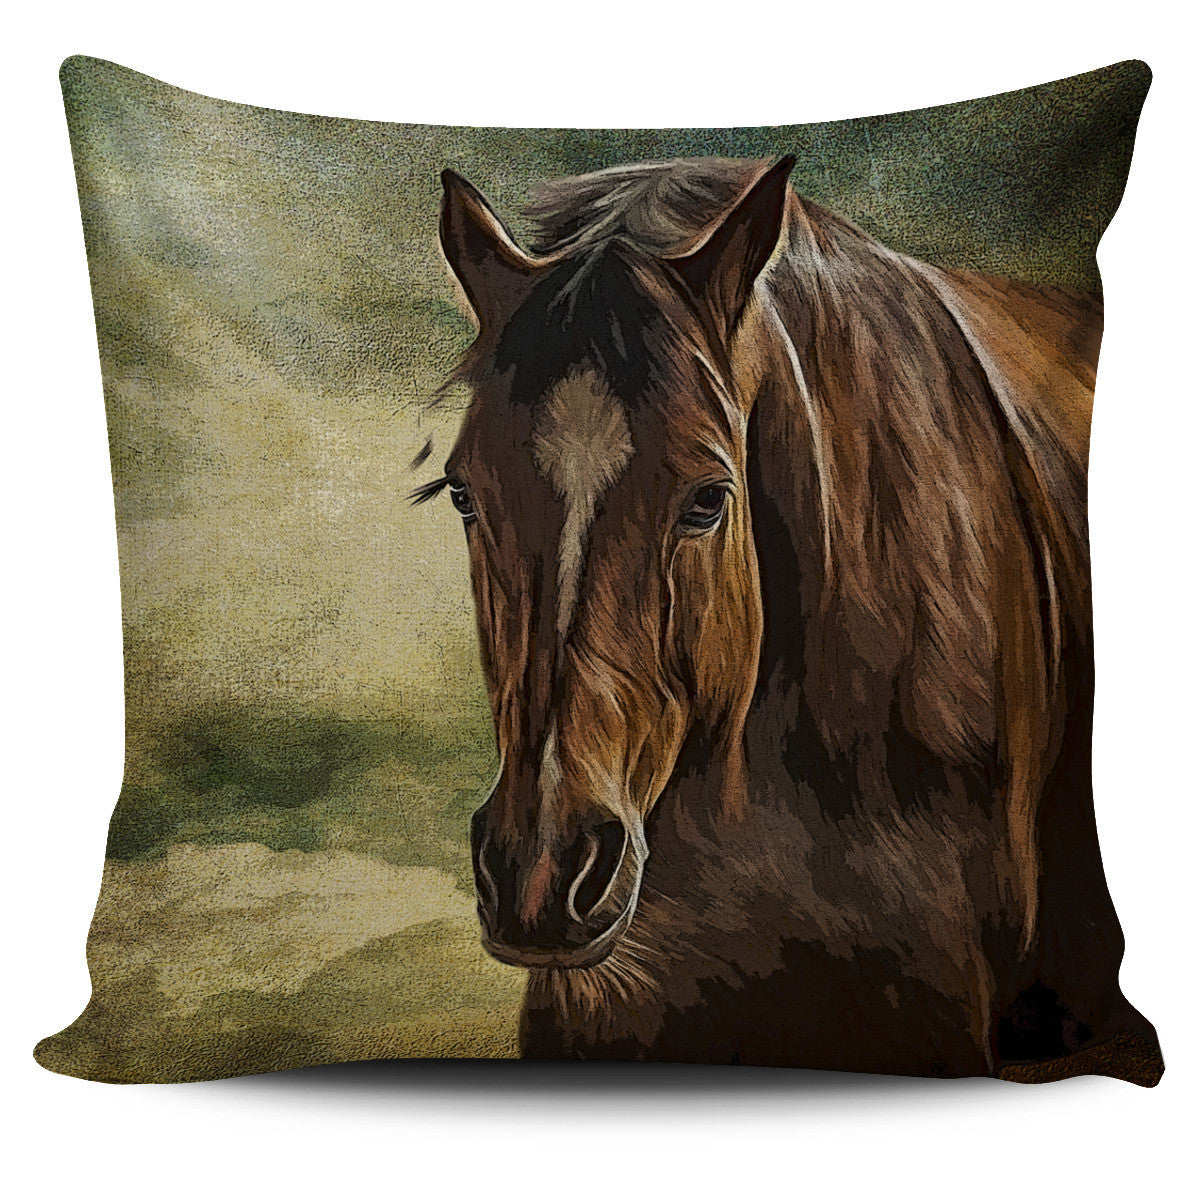 pillow living decor from nordicos horse car case room linen cover cotton home item print in artistry cojines decorative cushion new